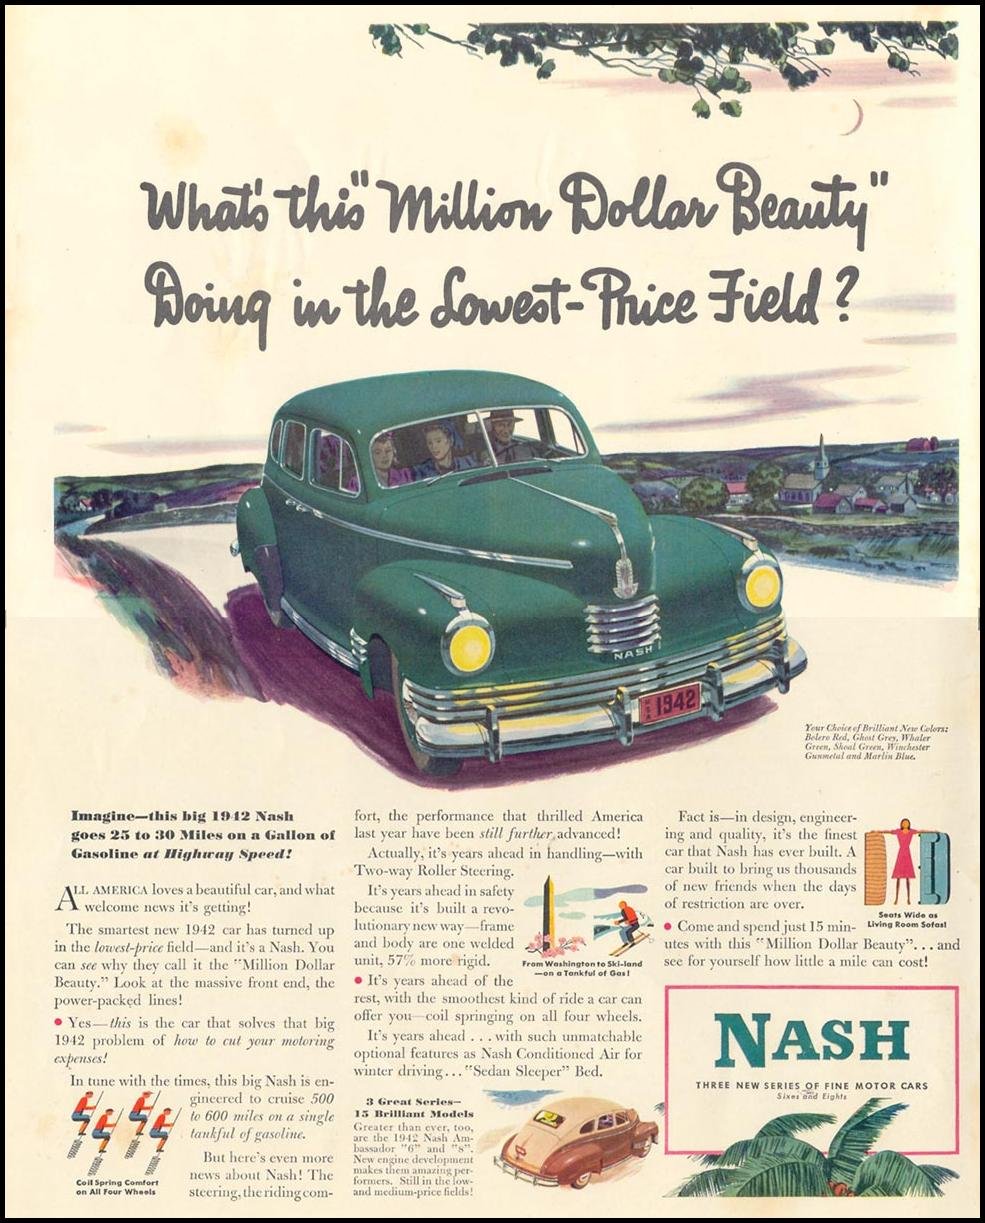 NASH AUTOMOBILES LIFE 10/13/1941 INSIDE FRONT